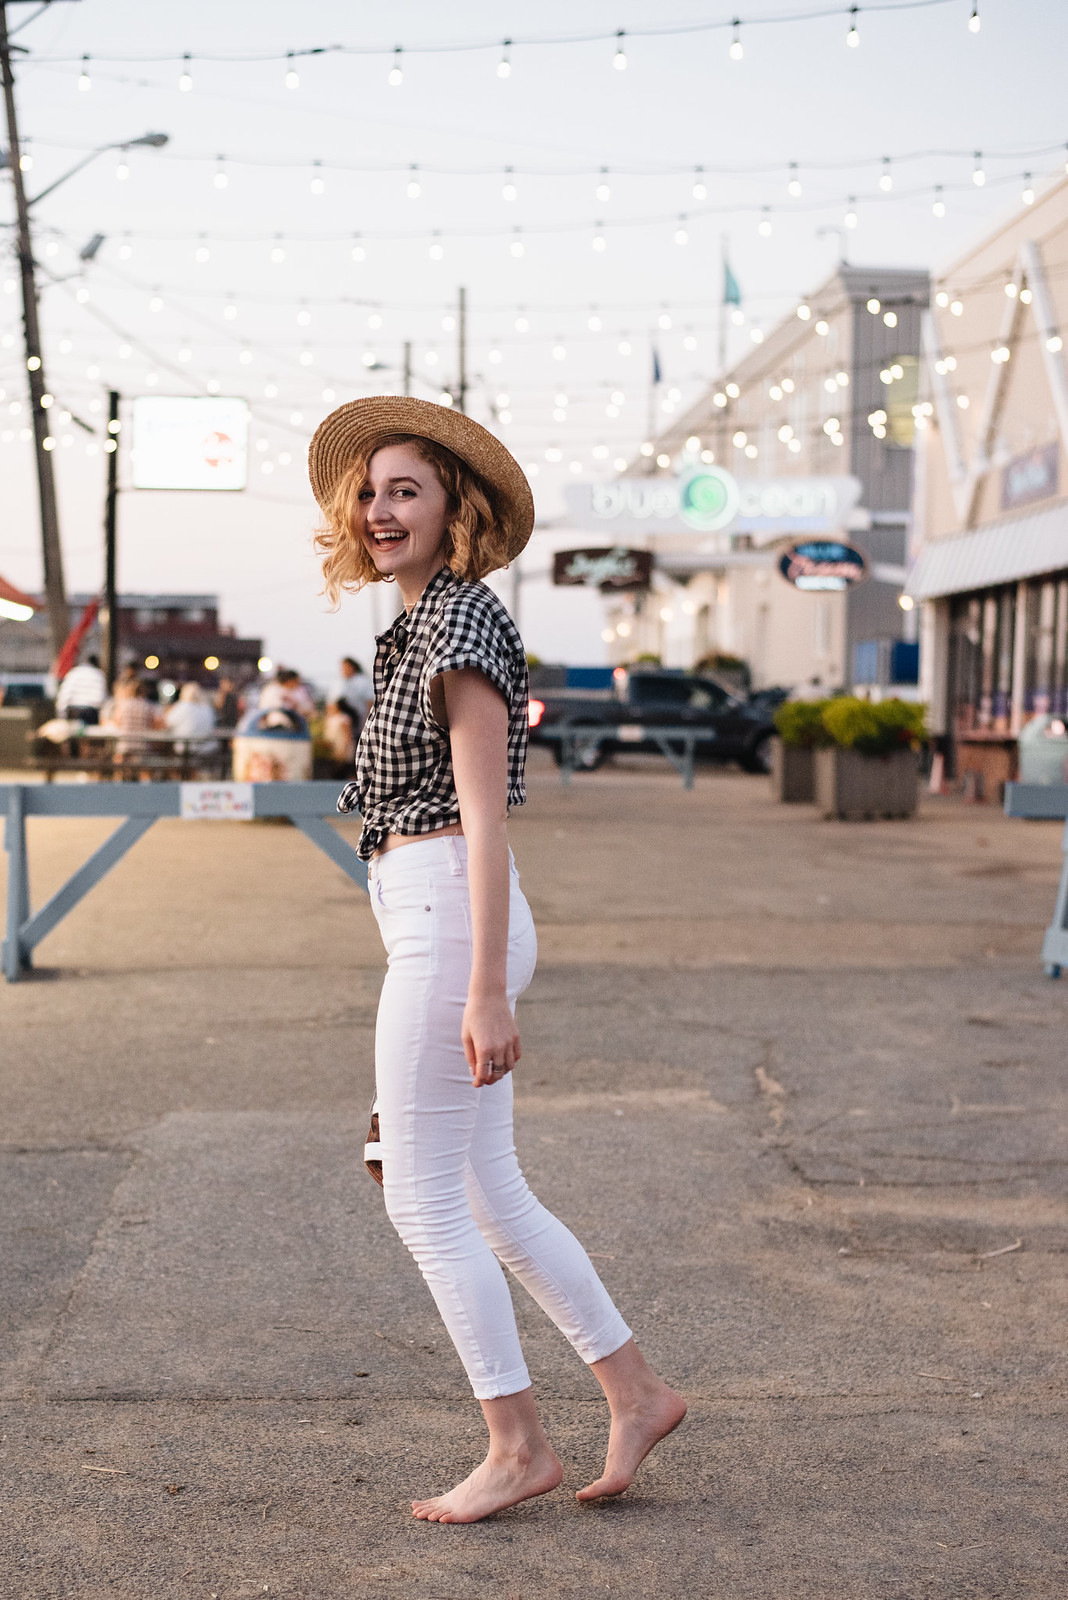 Gingham Shirt, White Jeans, and Straw Boater Hat on juliettelaura.blogspot.com